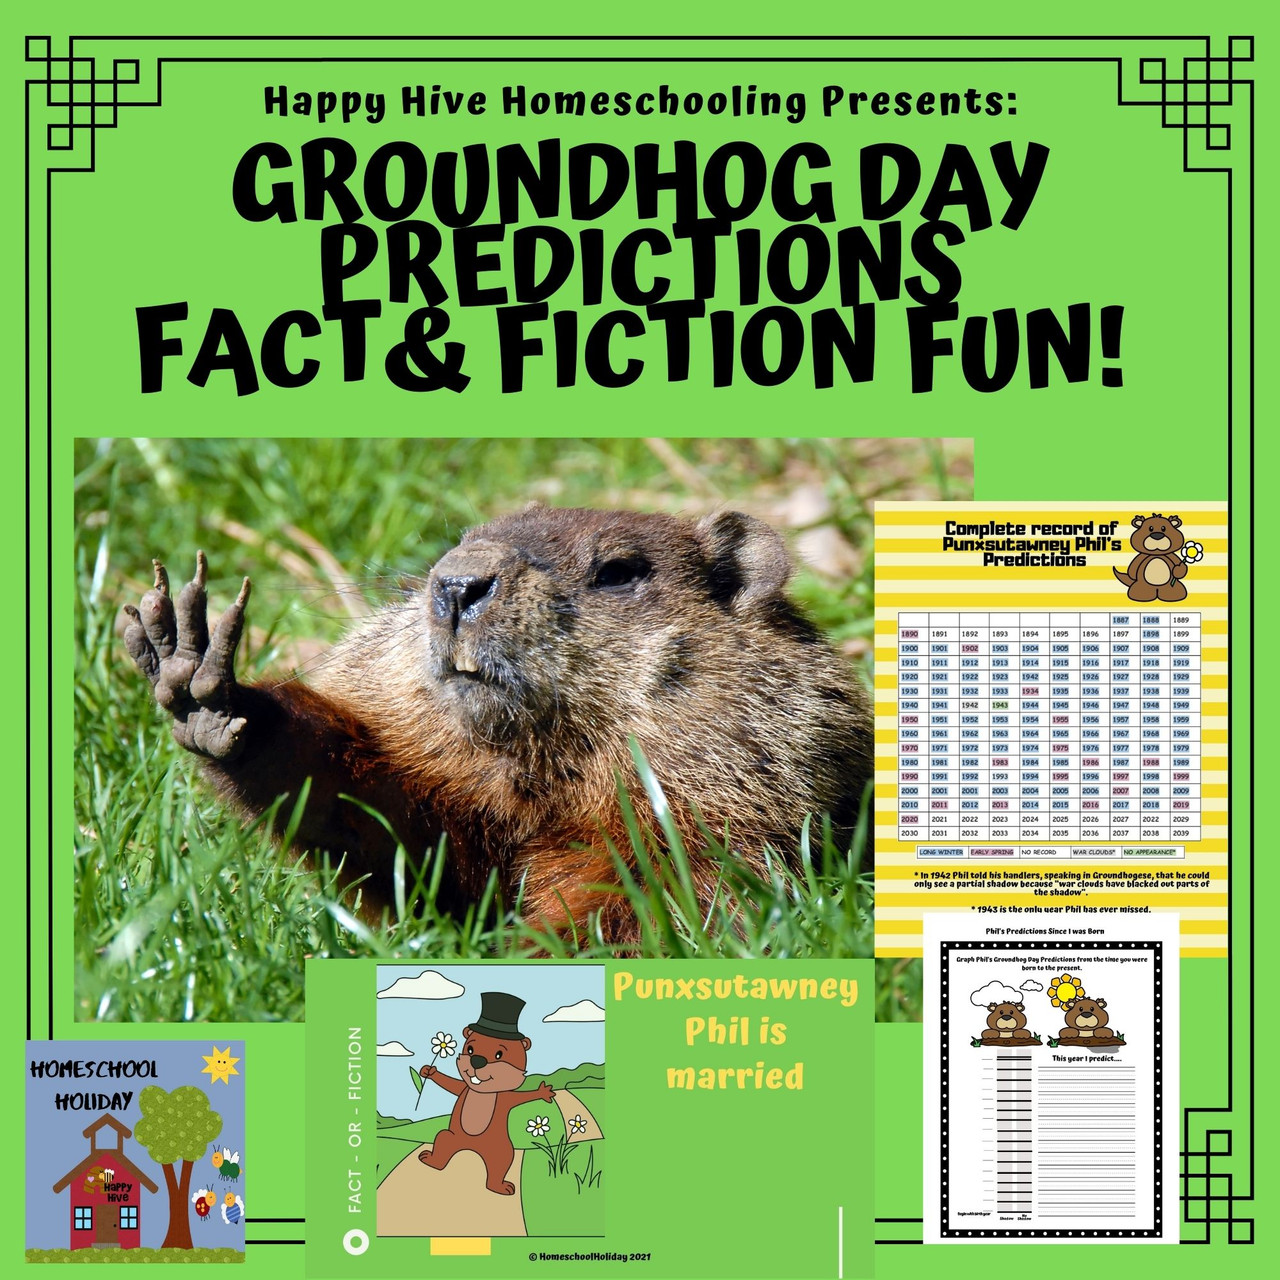 Groundhog Day Groundhog Prediction \u0026 Fun Facts Presentation Activities  Google Slides - Amped Up Learning [ 1280 x 1280 Pixel ]